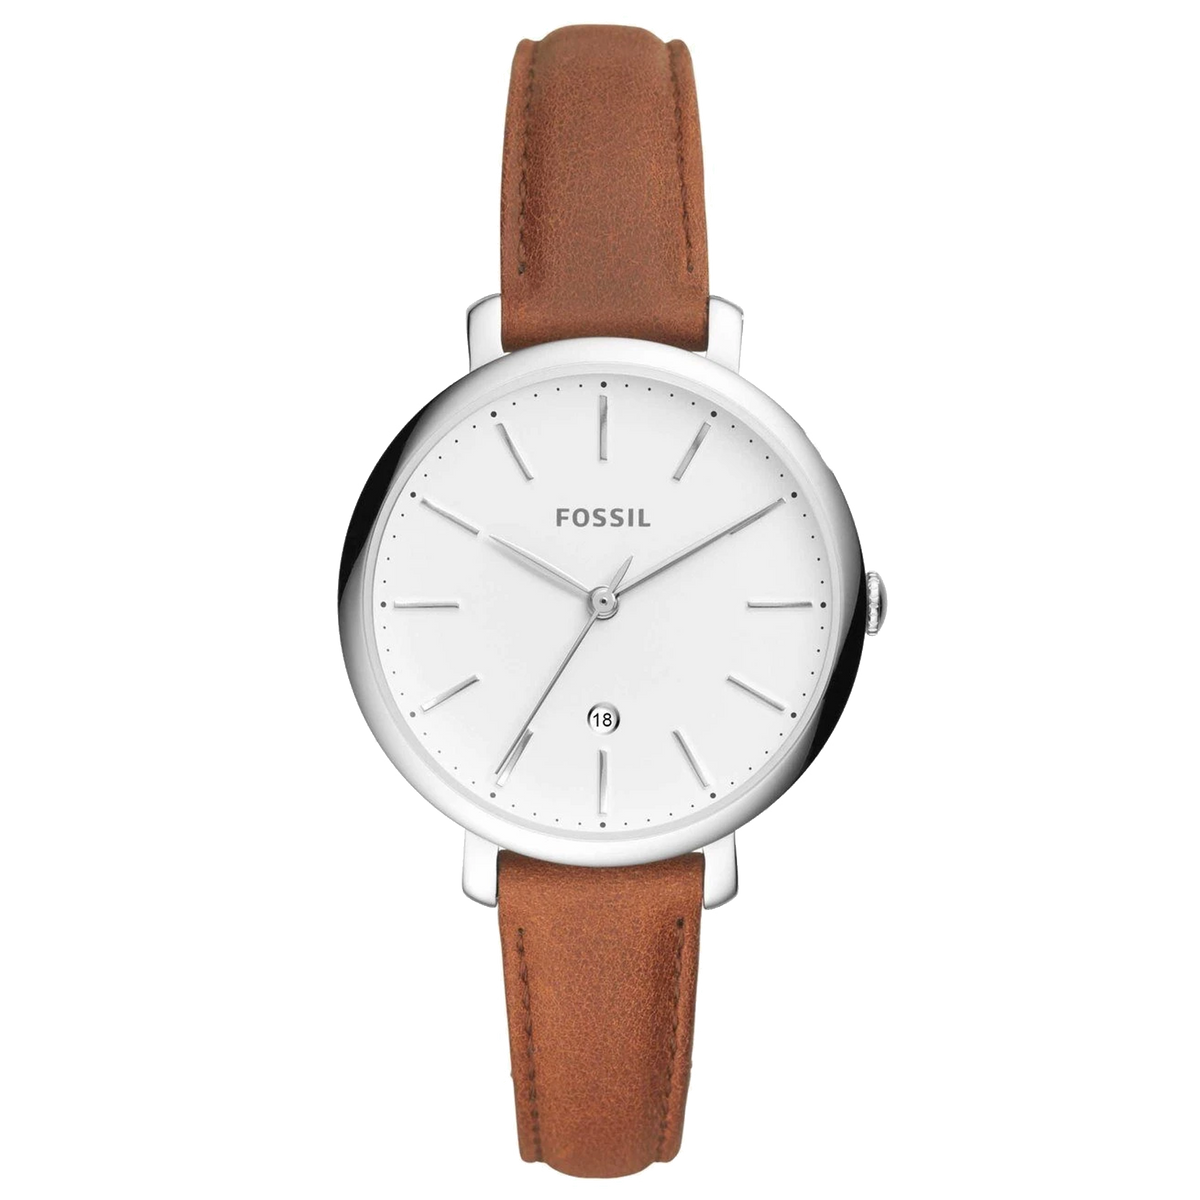 Fossil Watch Jacqueline - Stainless Steel